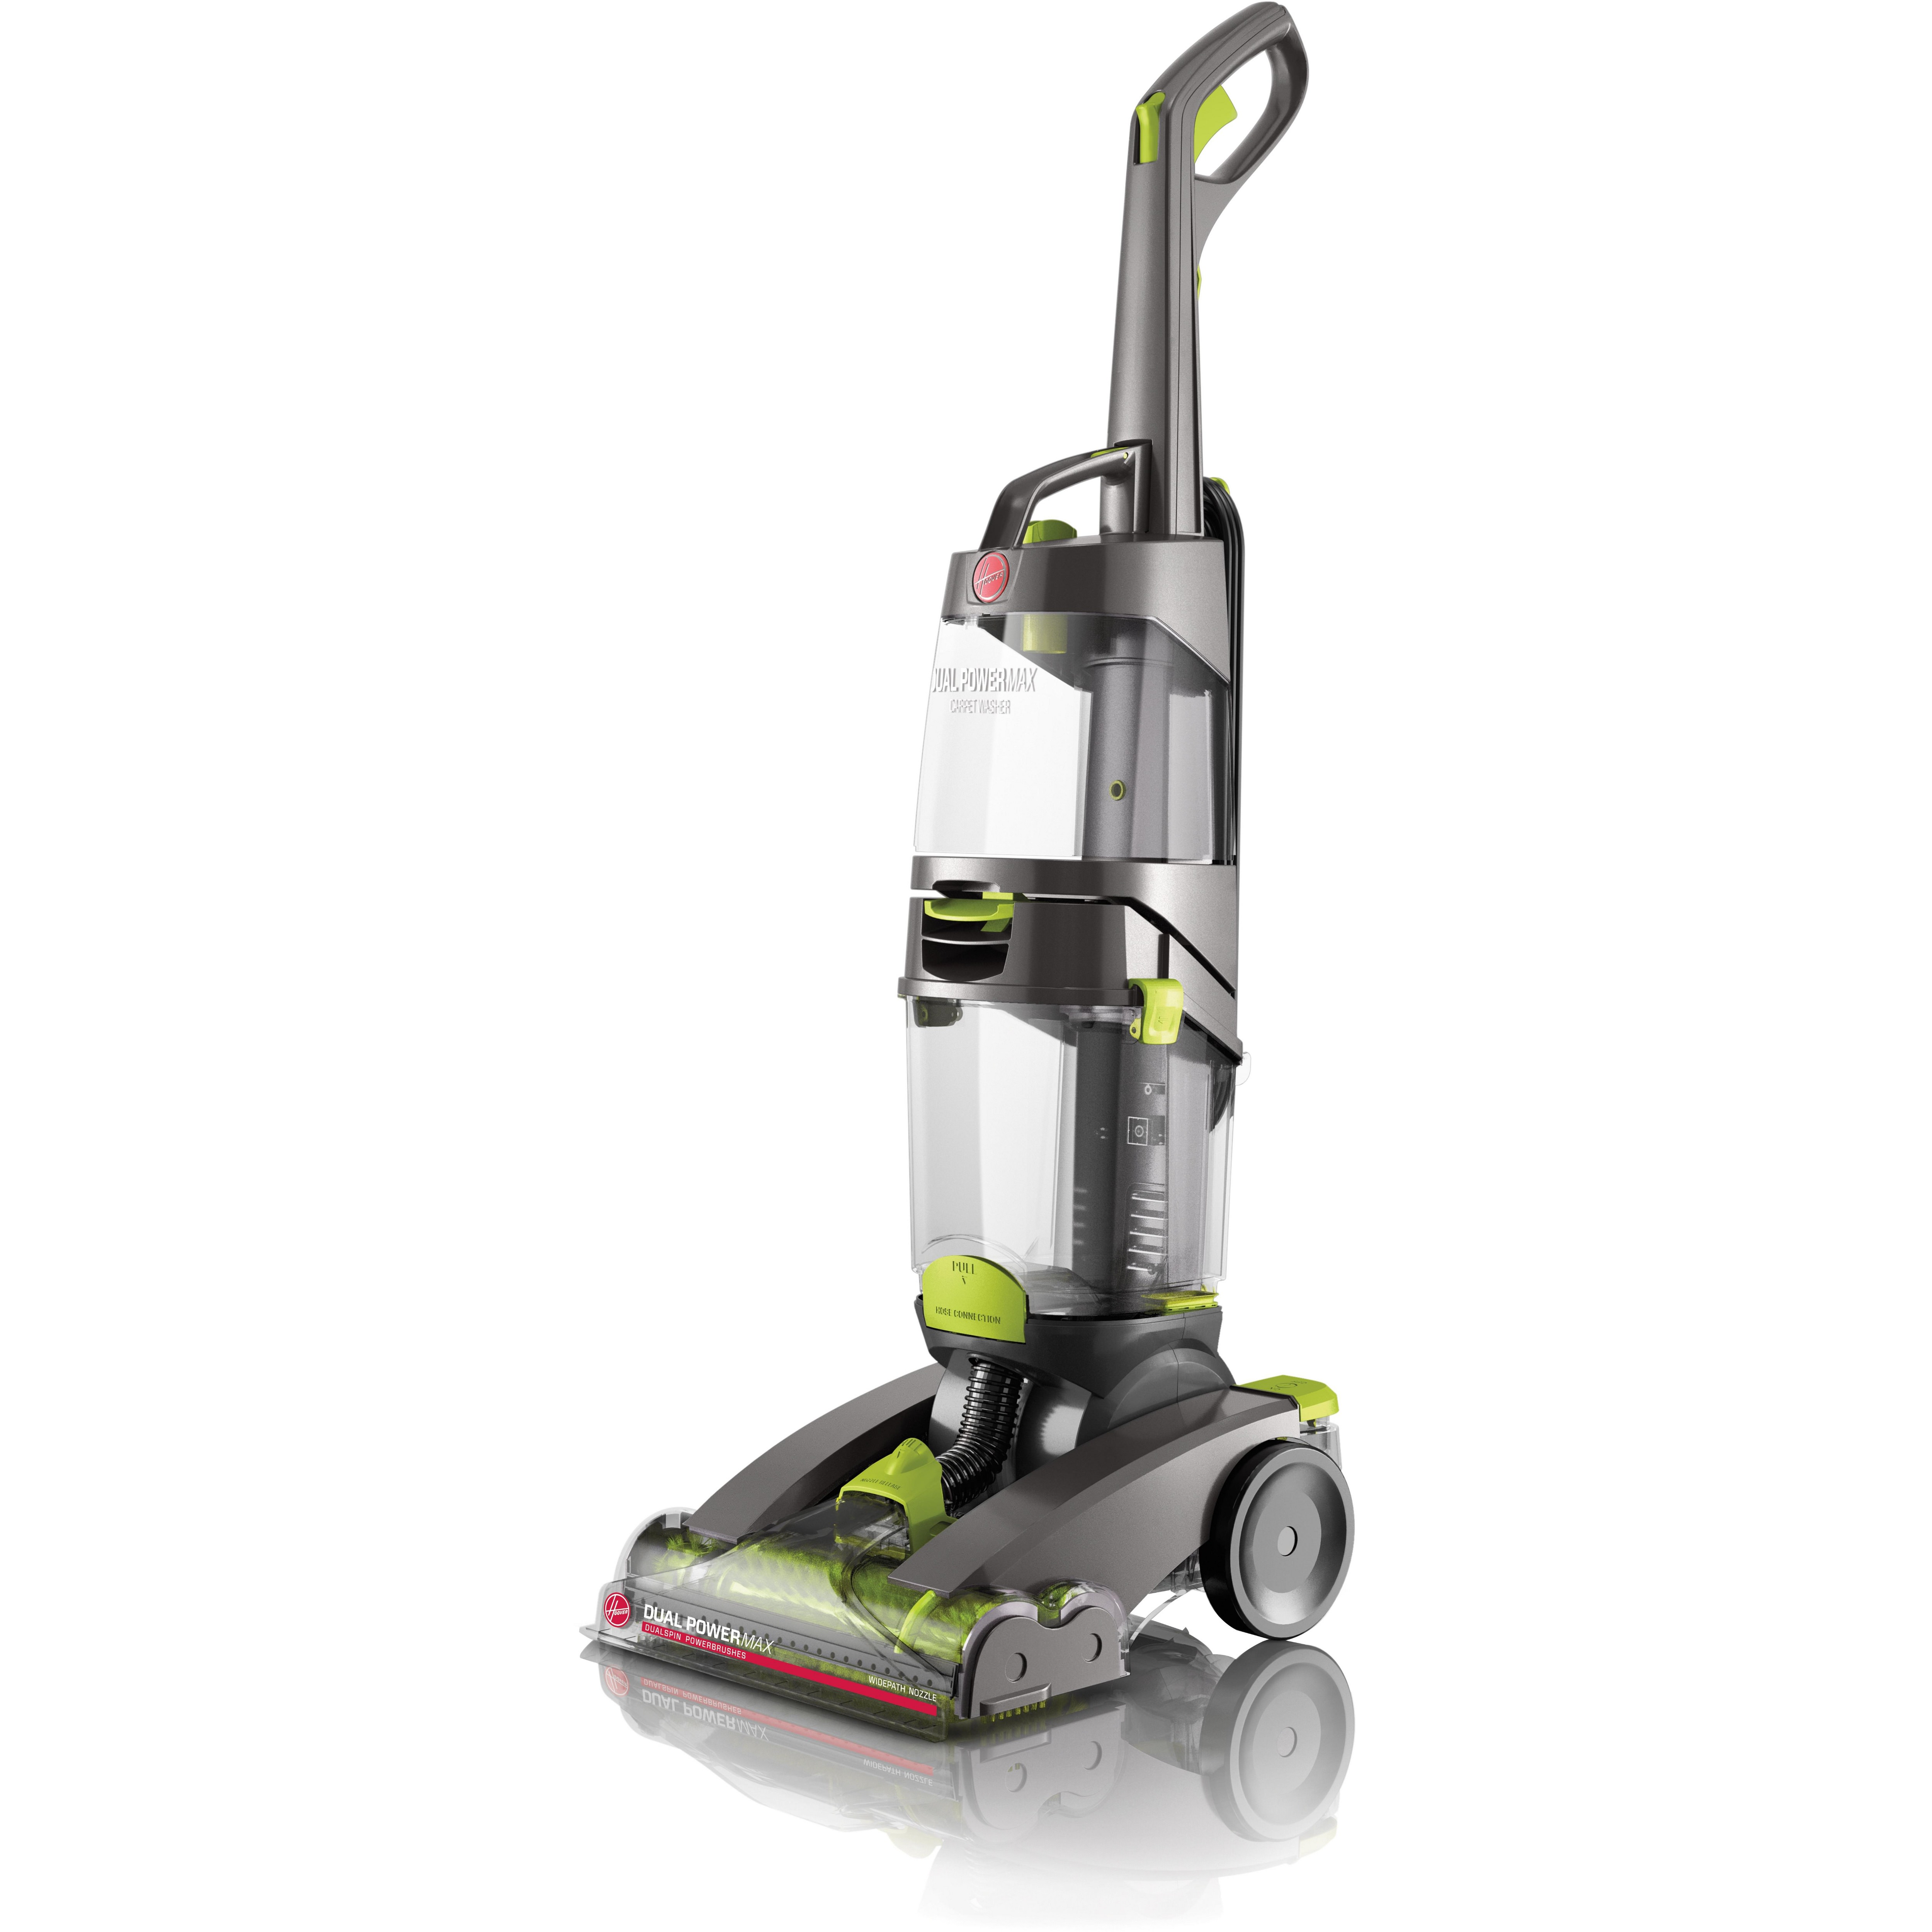 hoover fh51000 dual power max carpet cleaner